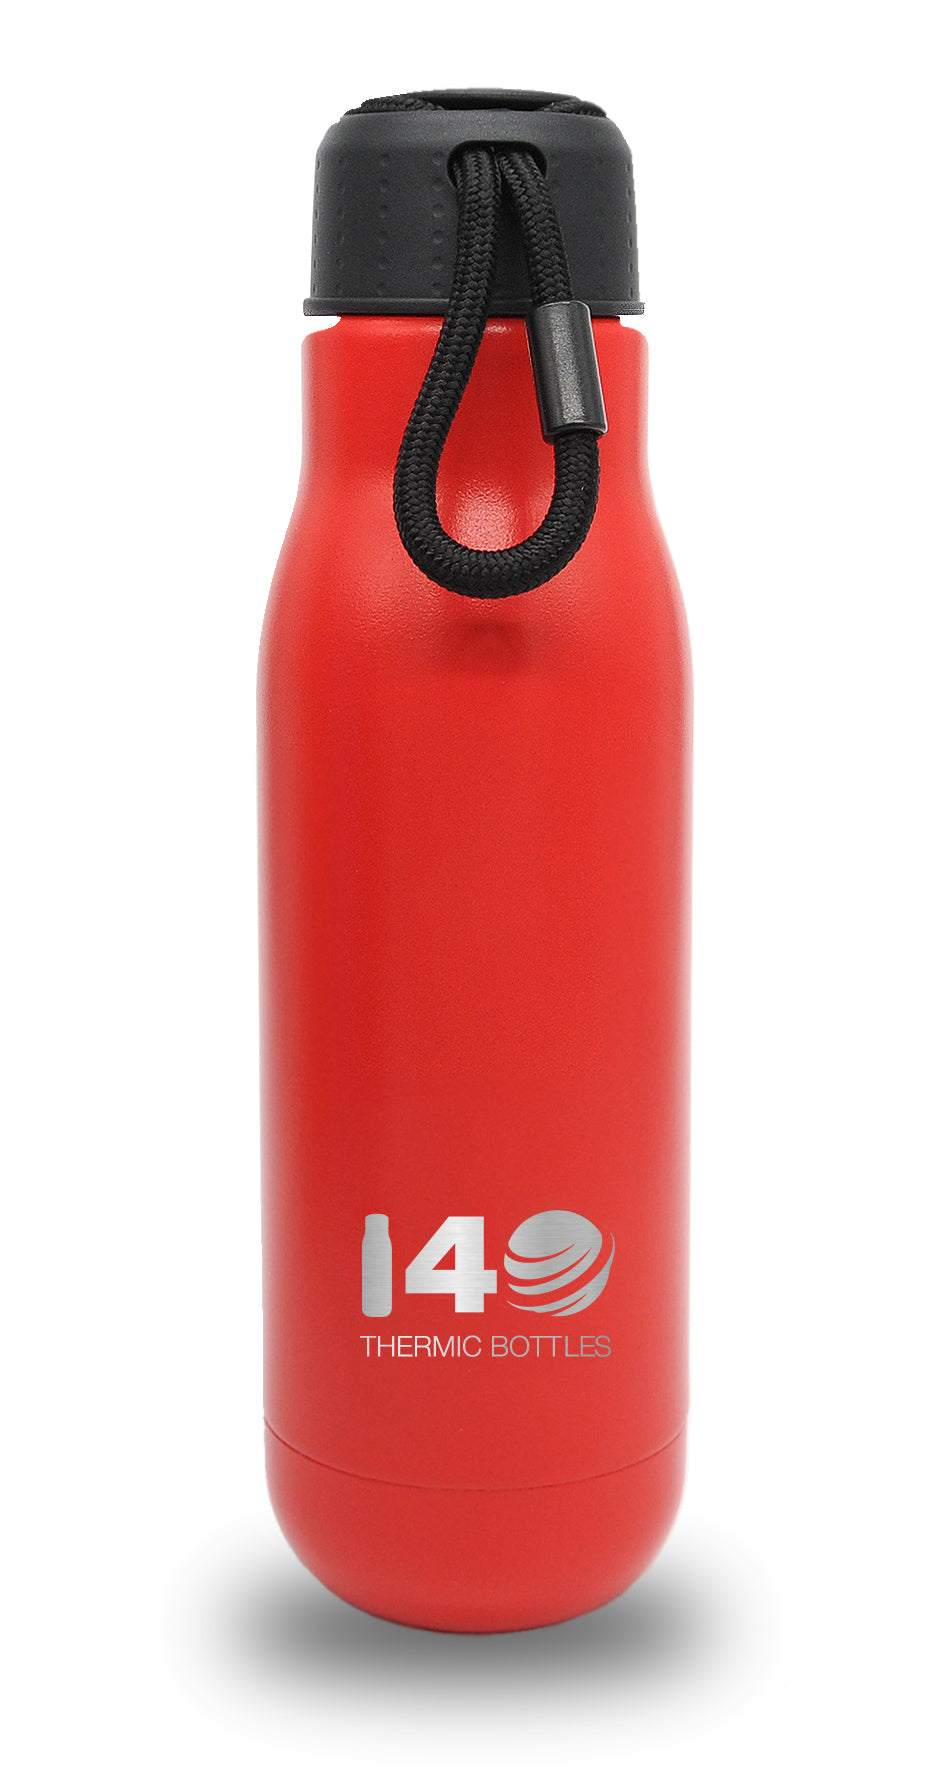 Thermic Bottle - First edition - Bottiglia termica Centoquaranta